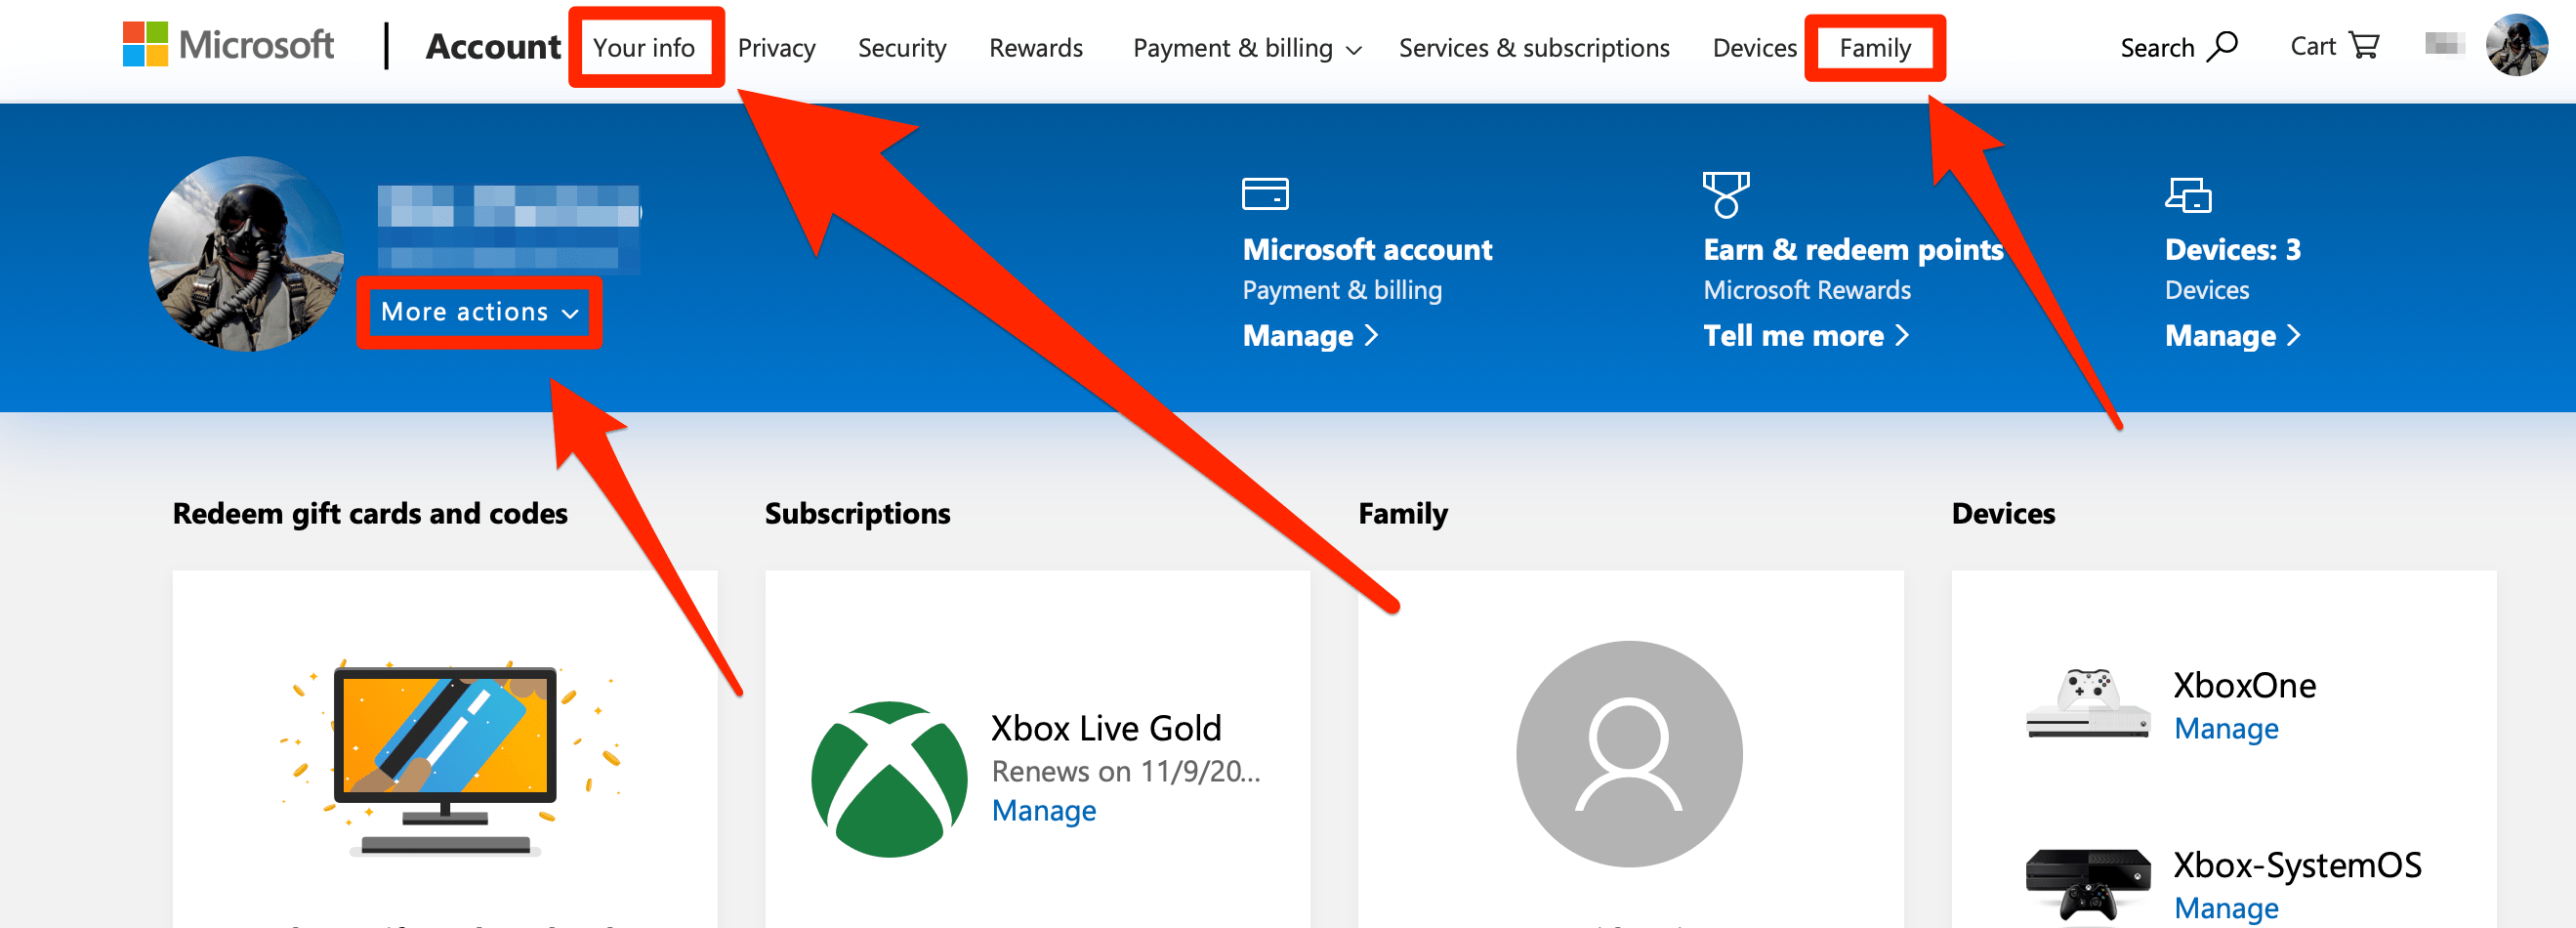 How To Change Your Age On Xbox One In 7 Simple Steps